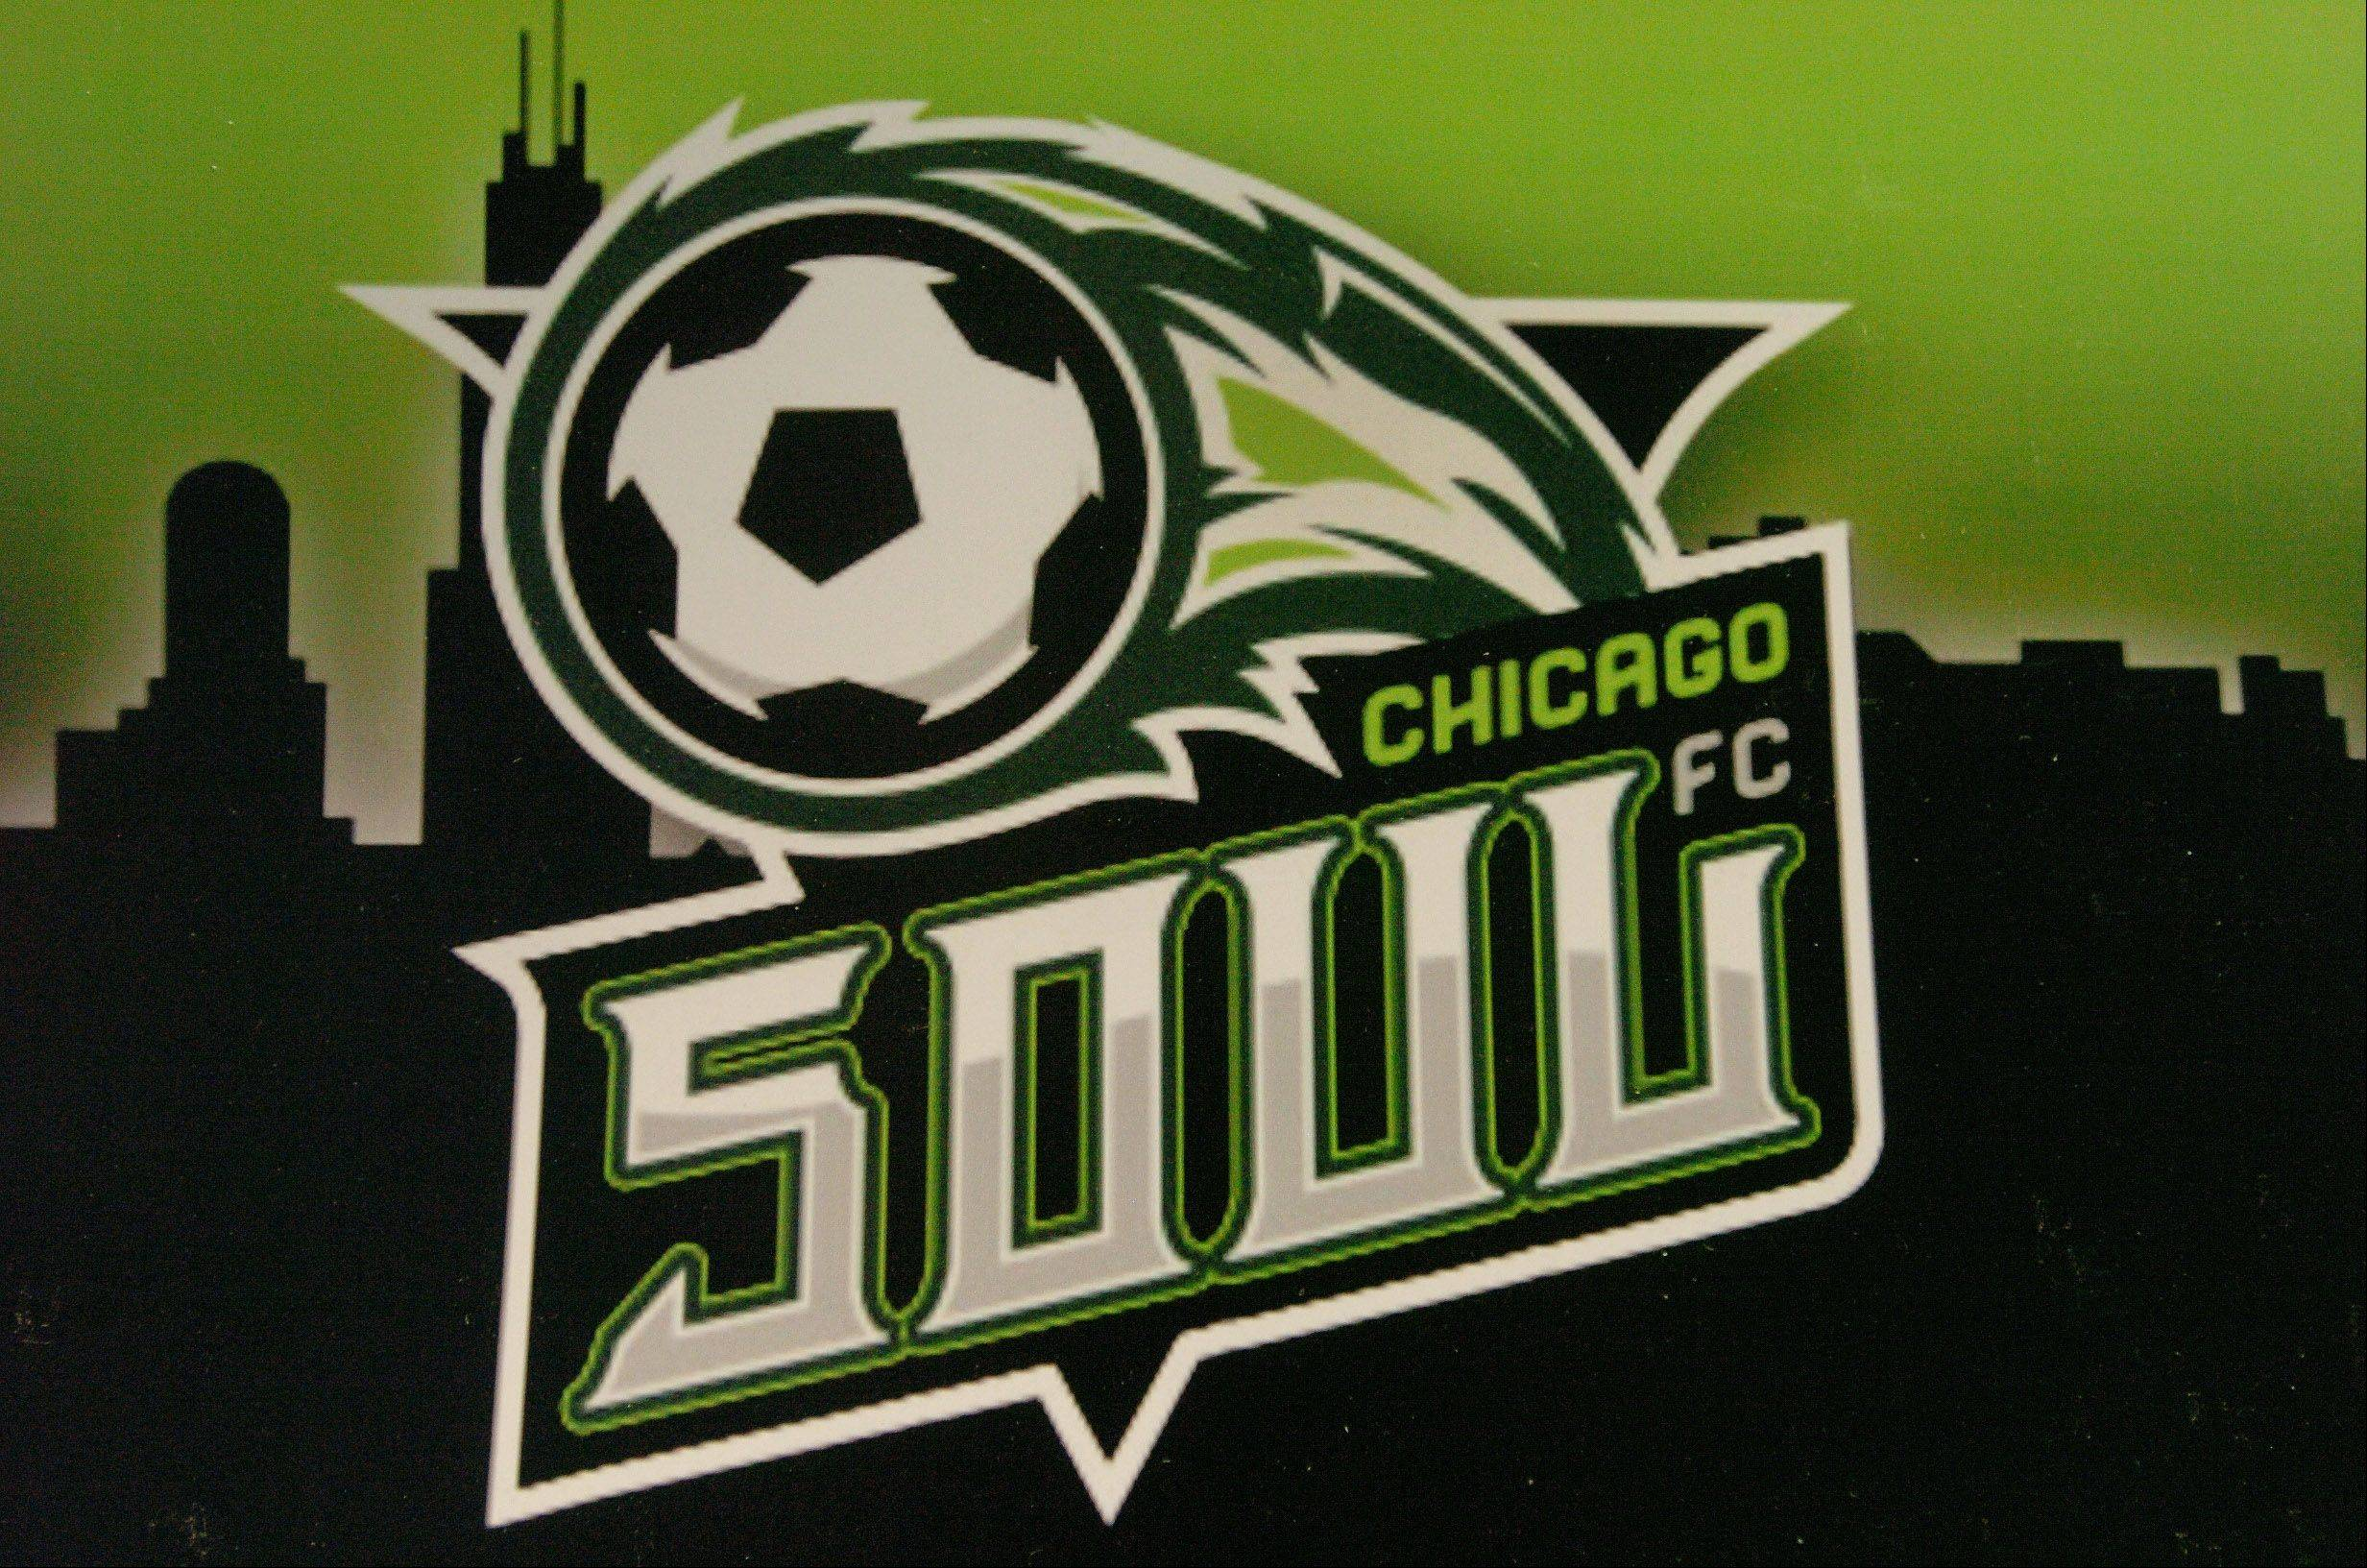 The Chicago Soul indoor soccer team has replaced its head coach. The team plays its MISL games at the Sears Centre in Hoffman Estates.